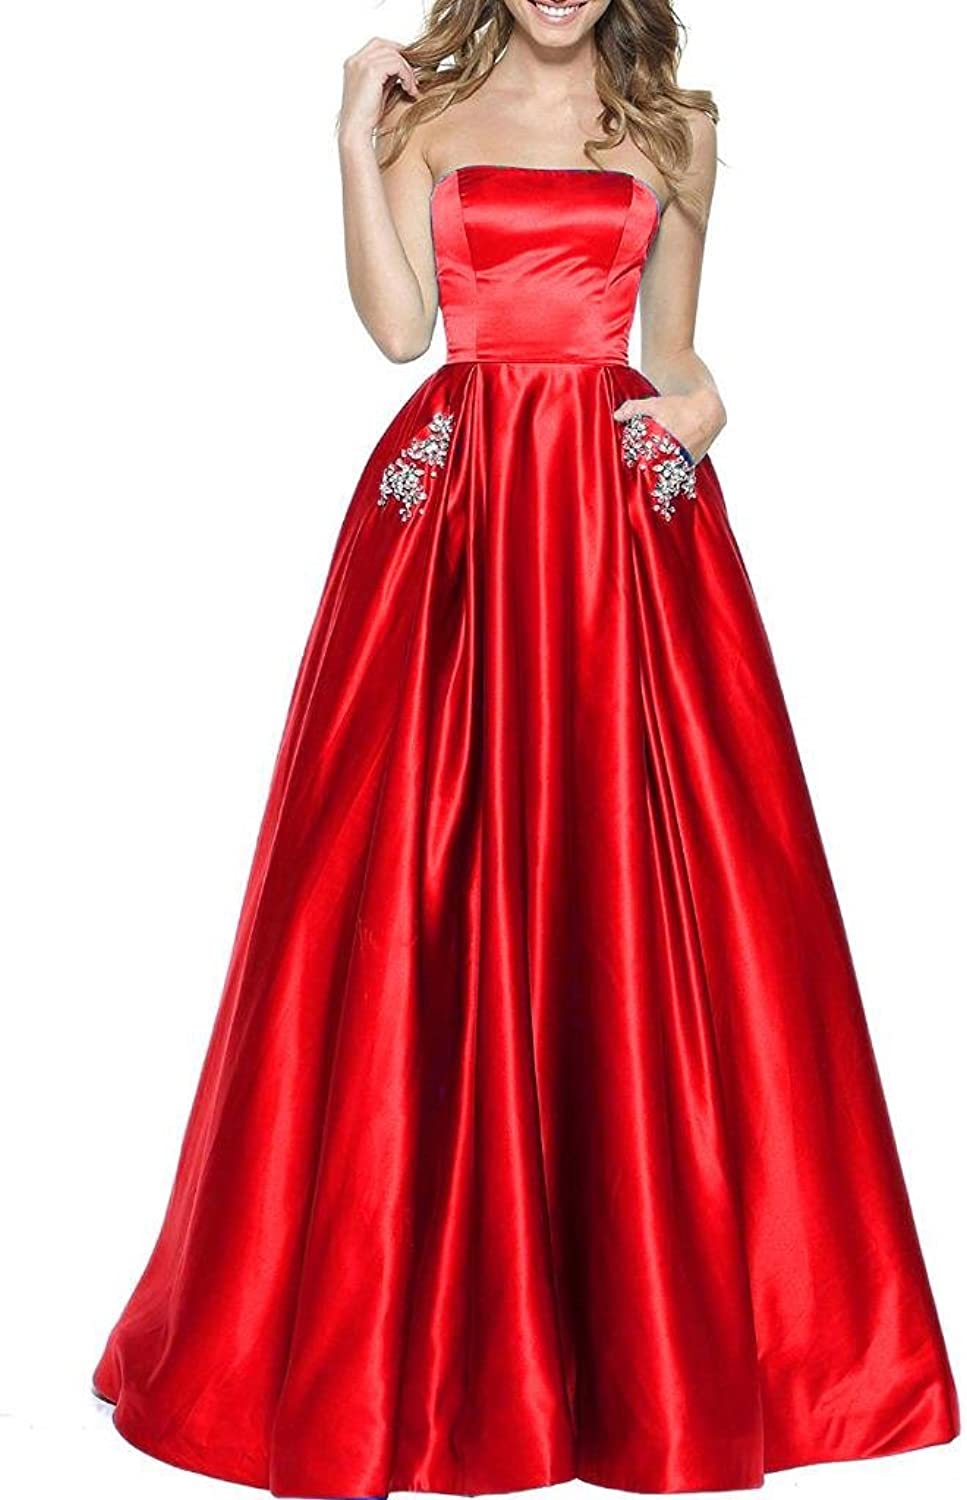 BBCbridal Women's Strapless Beaded Prom Dresses Long ALine Homecoming Party Gowns with Pockets